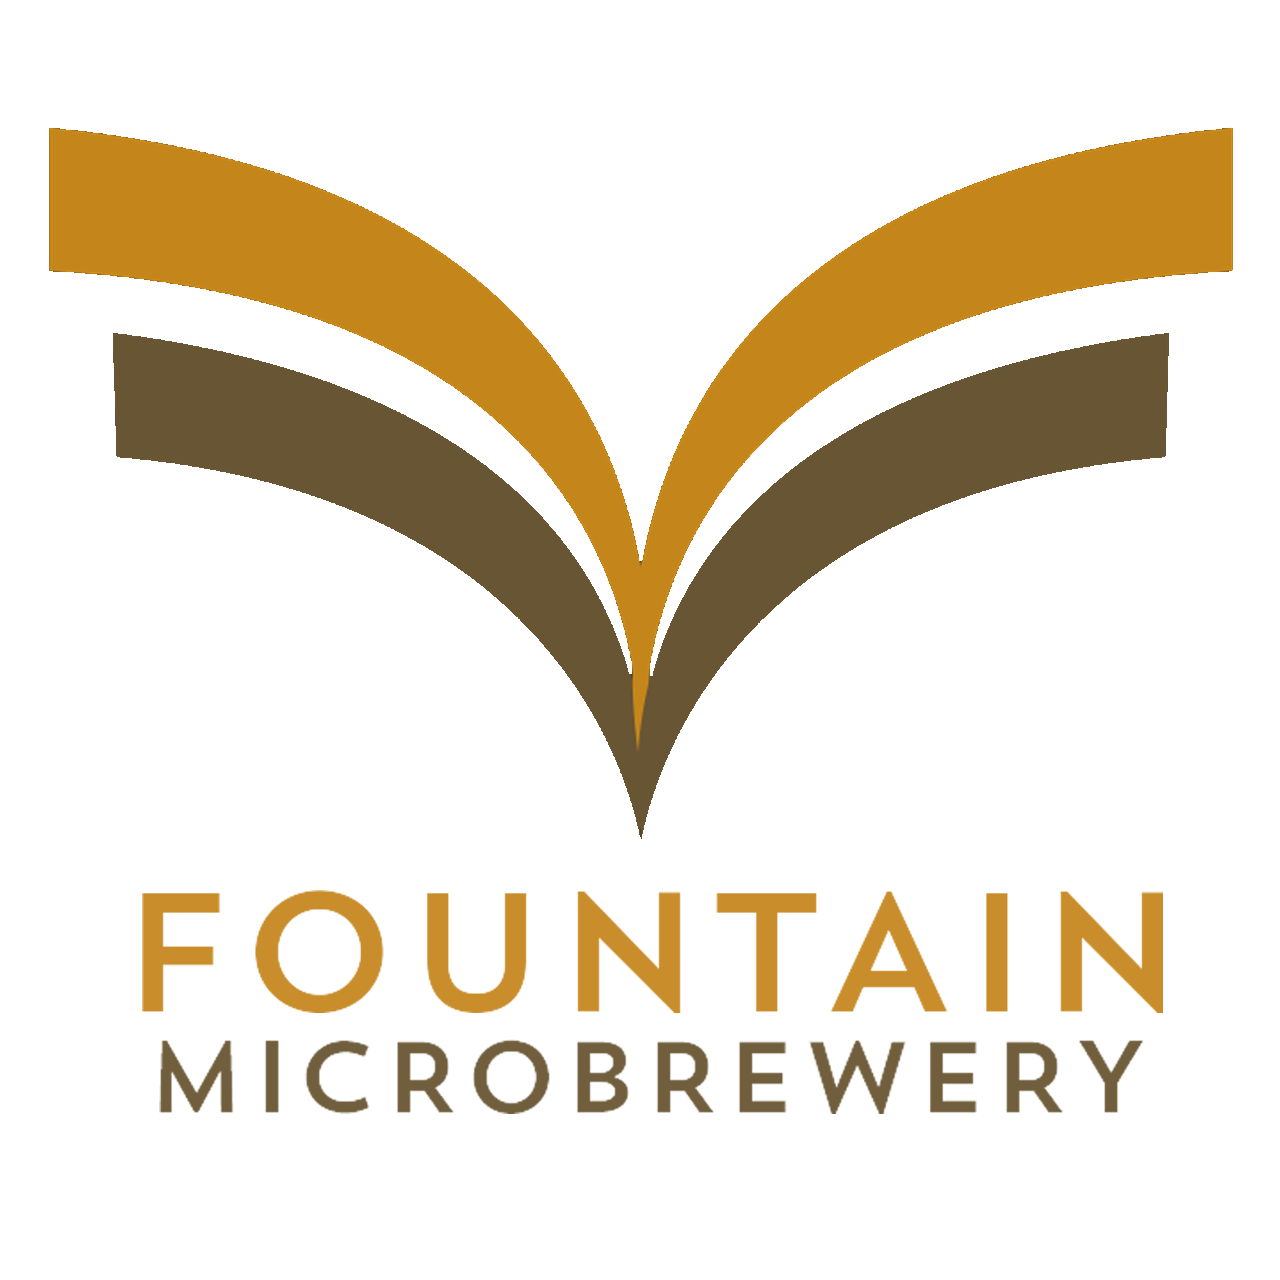 Fountain Microbrewery - Craft Beer Microbrewery & Restaurant